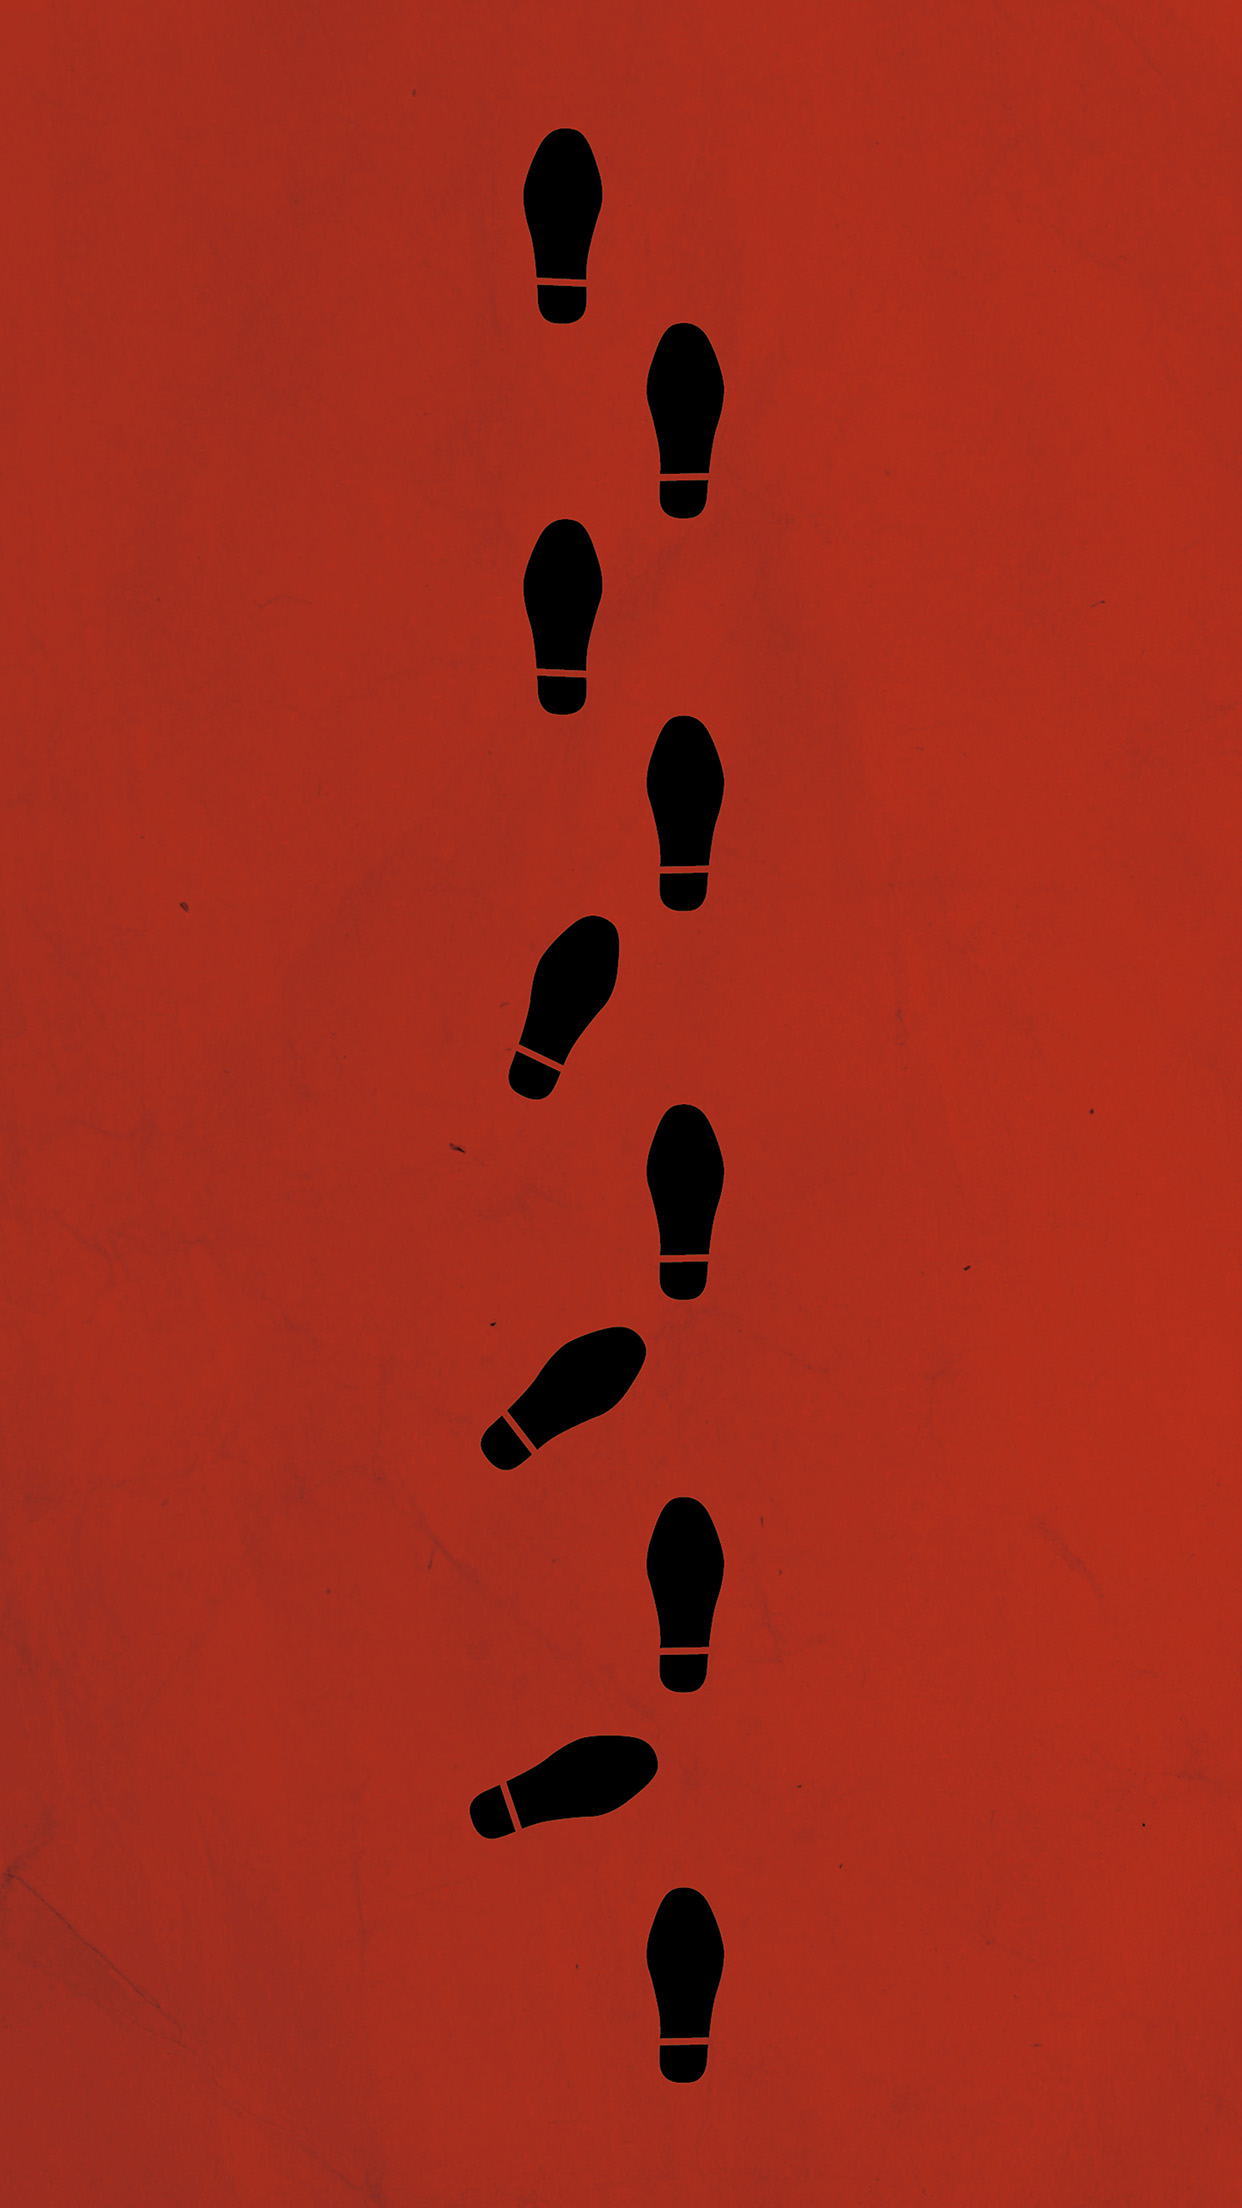 Minimal Usual Suspects Film Poster Art Illust Android wallpaper